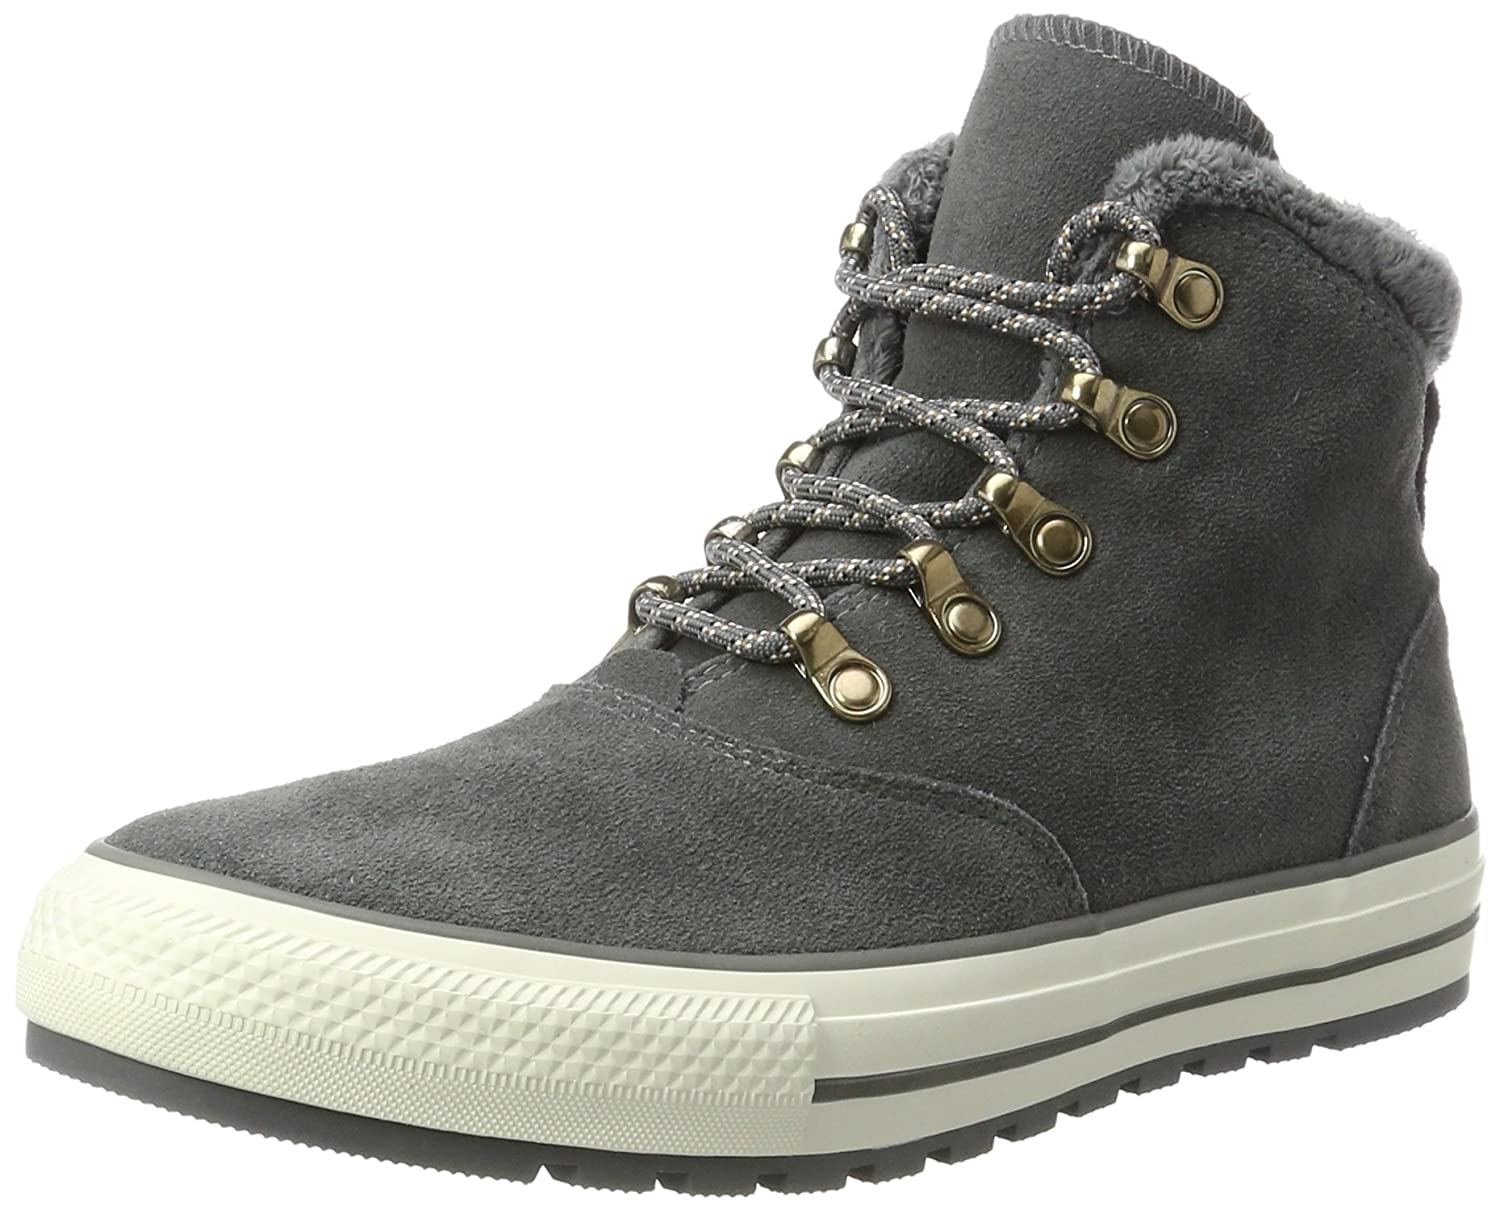 Converse CT All Star High Top Women's Ember Boots ThunderEgret 557934c